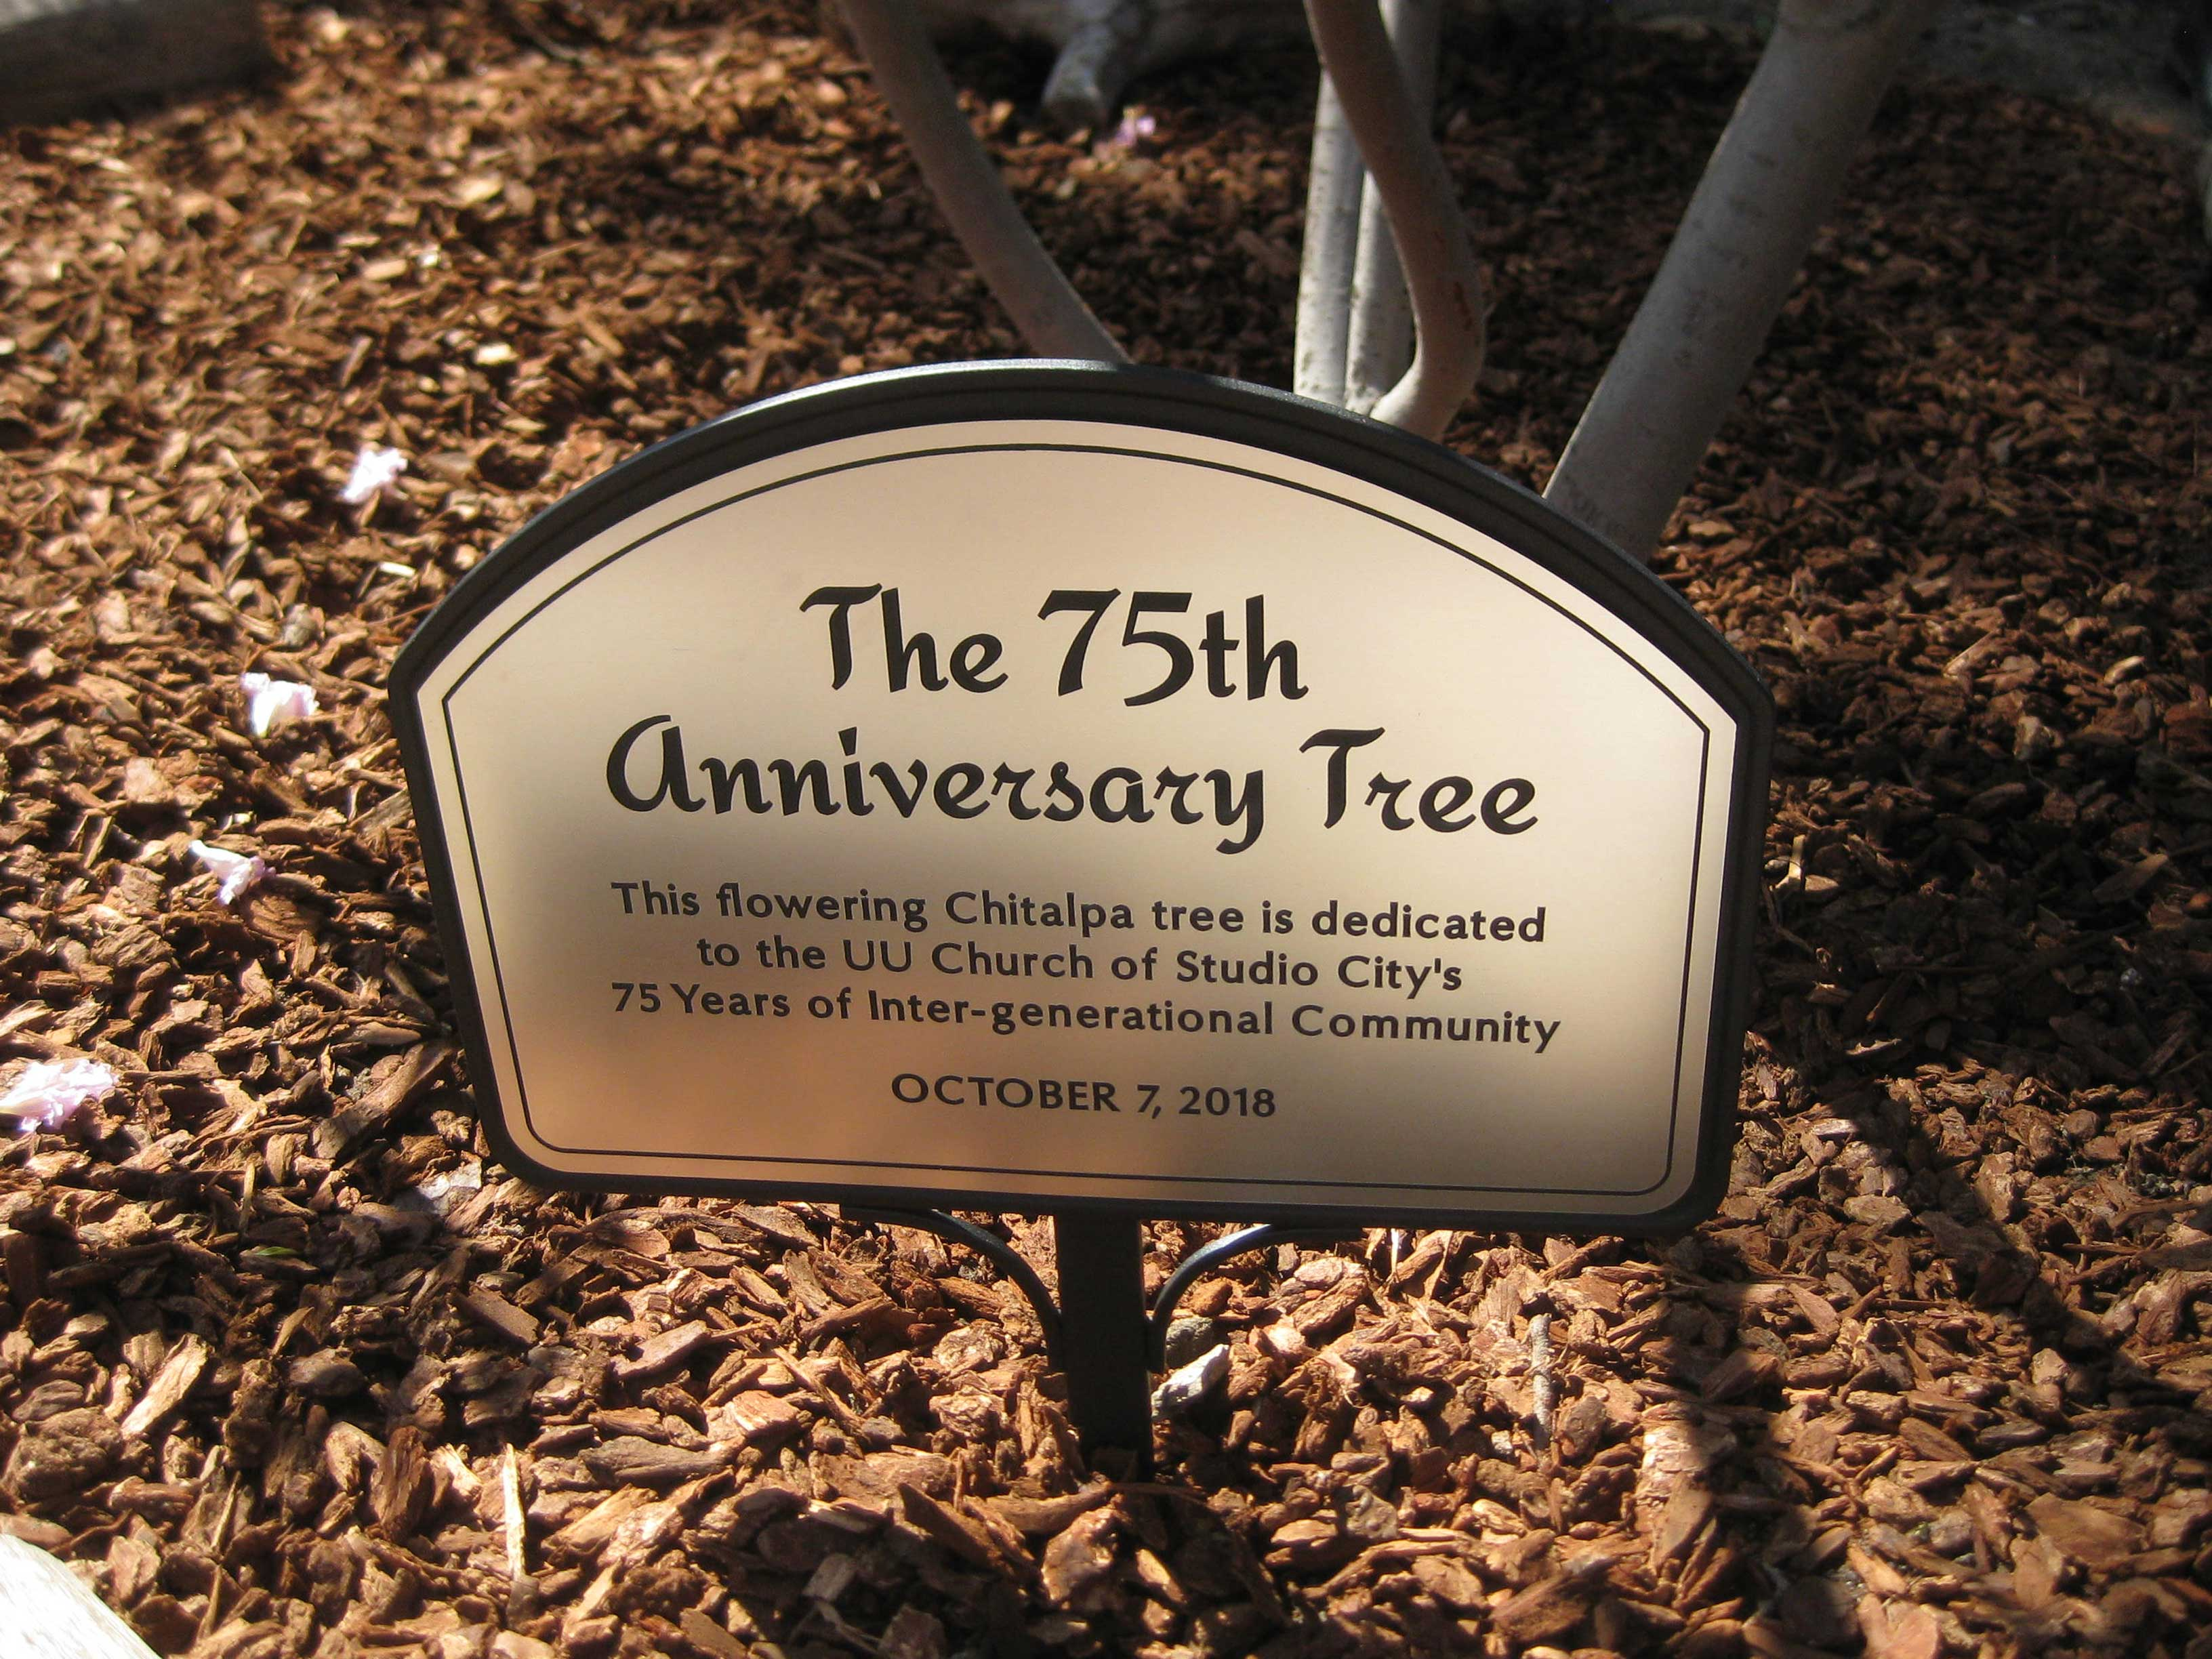 75th Anniversary Tree Dedication